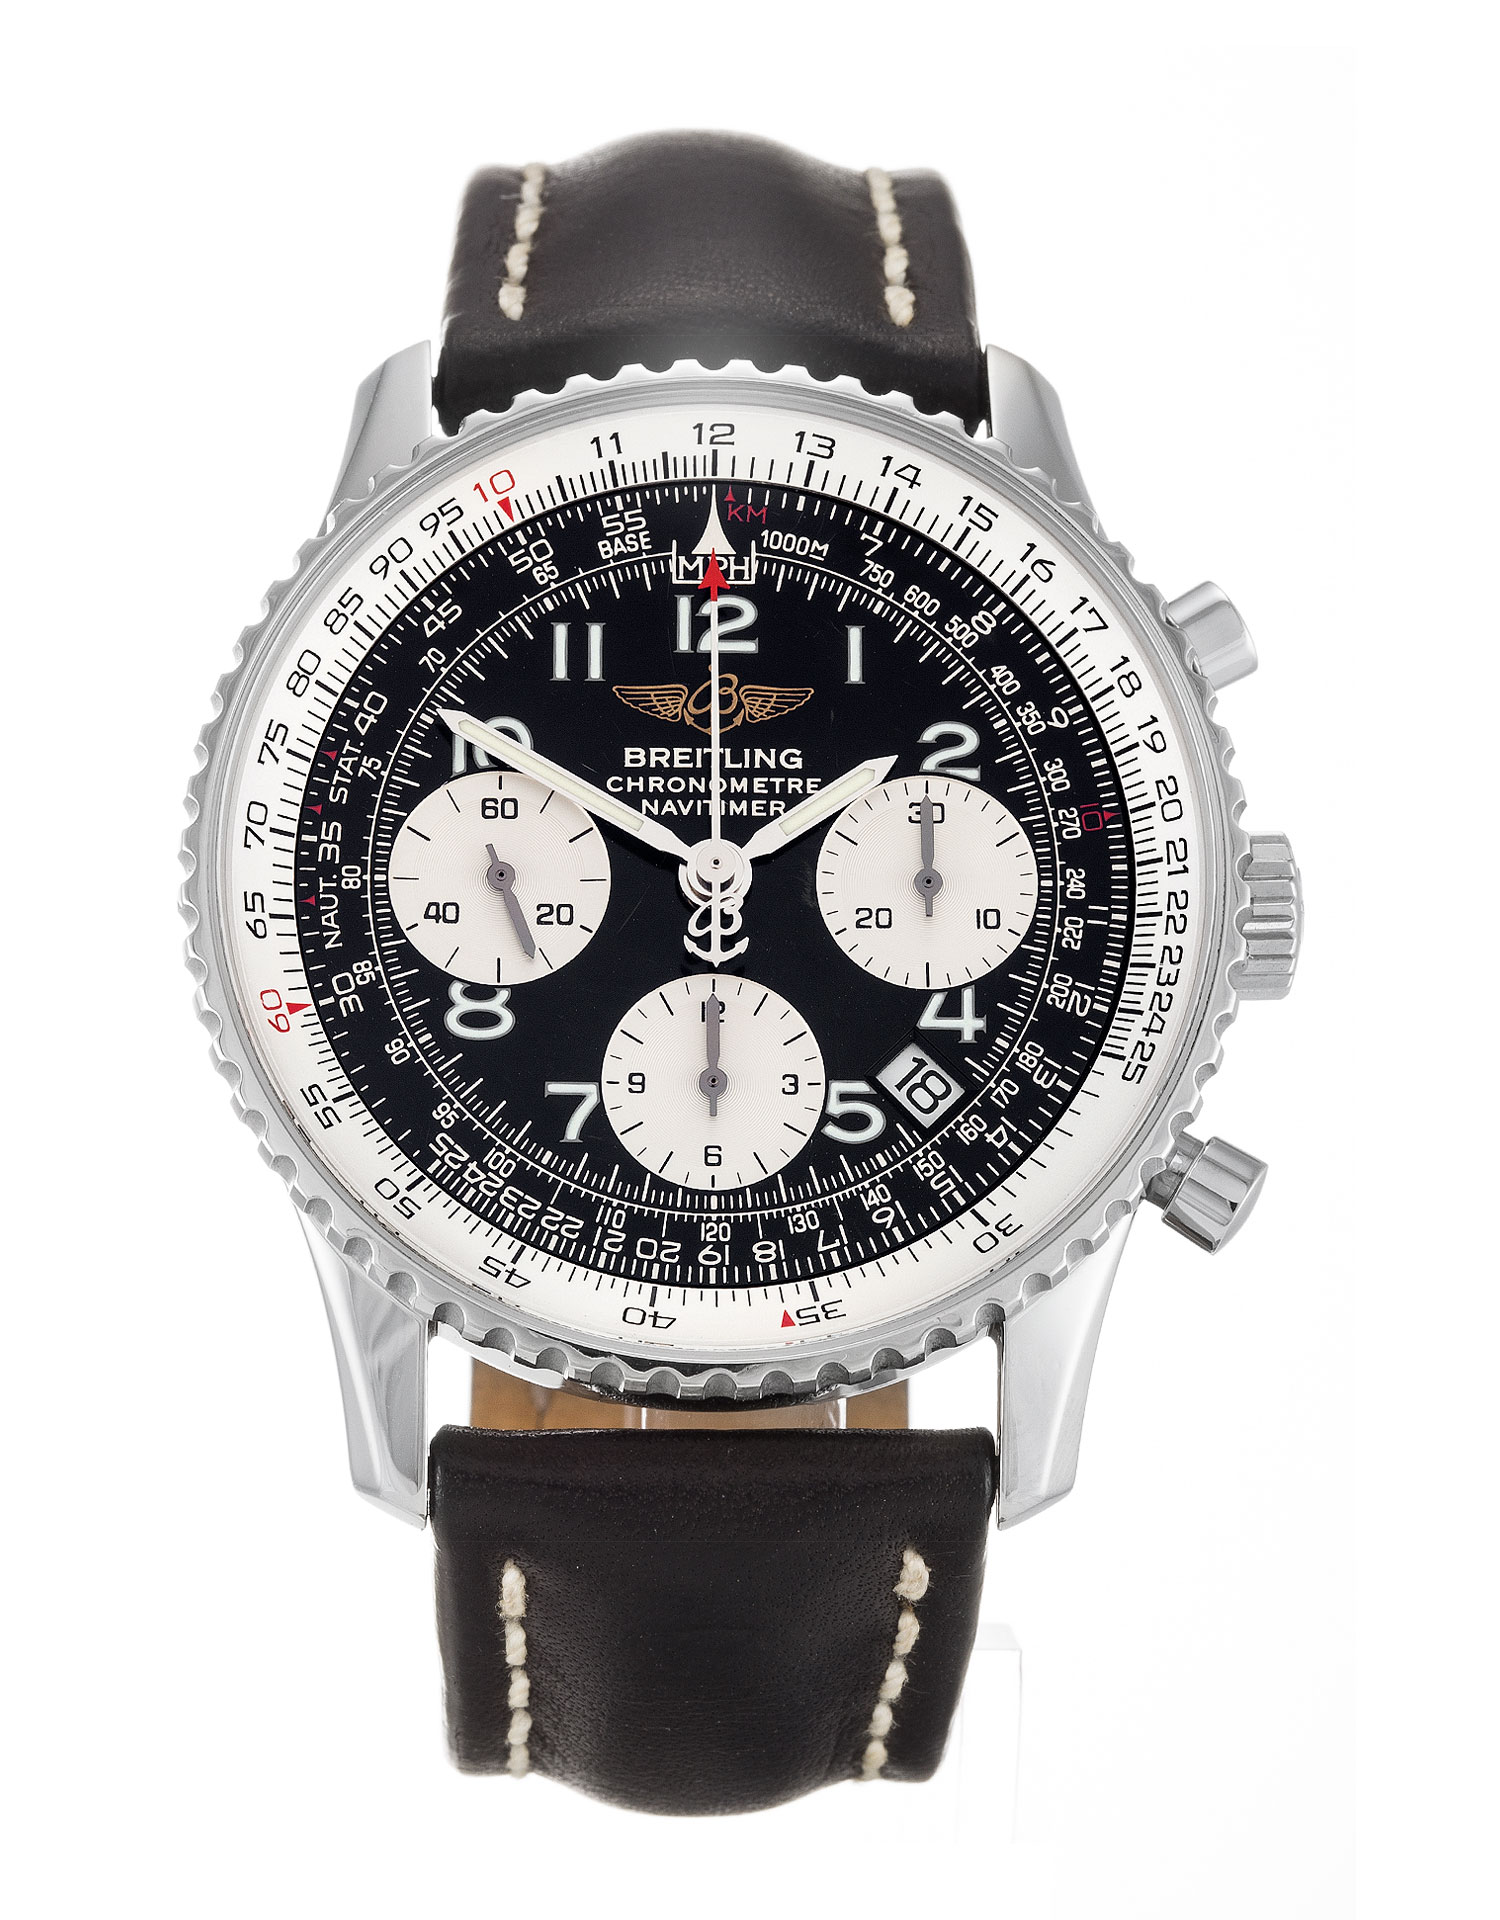 Breitling Navitimer A23322 Mens 41.8 Mm Steel Case Quartz Movement – iapac.to